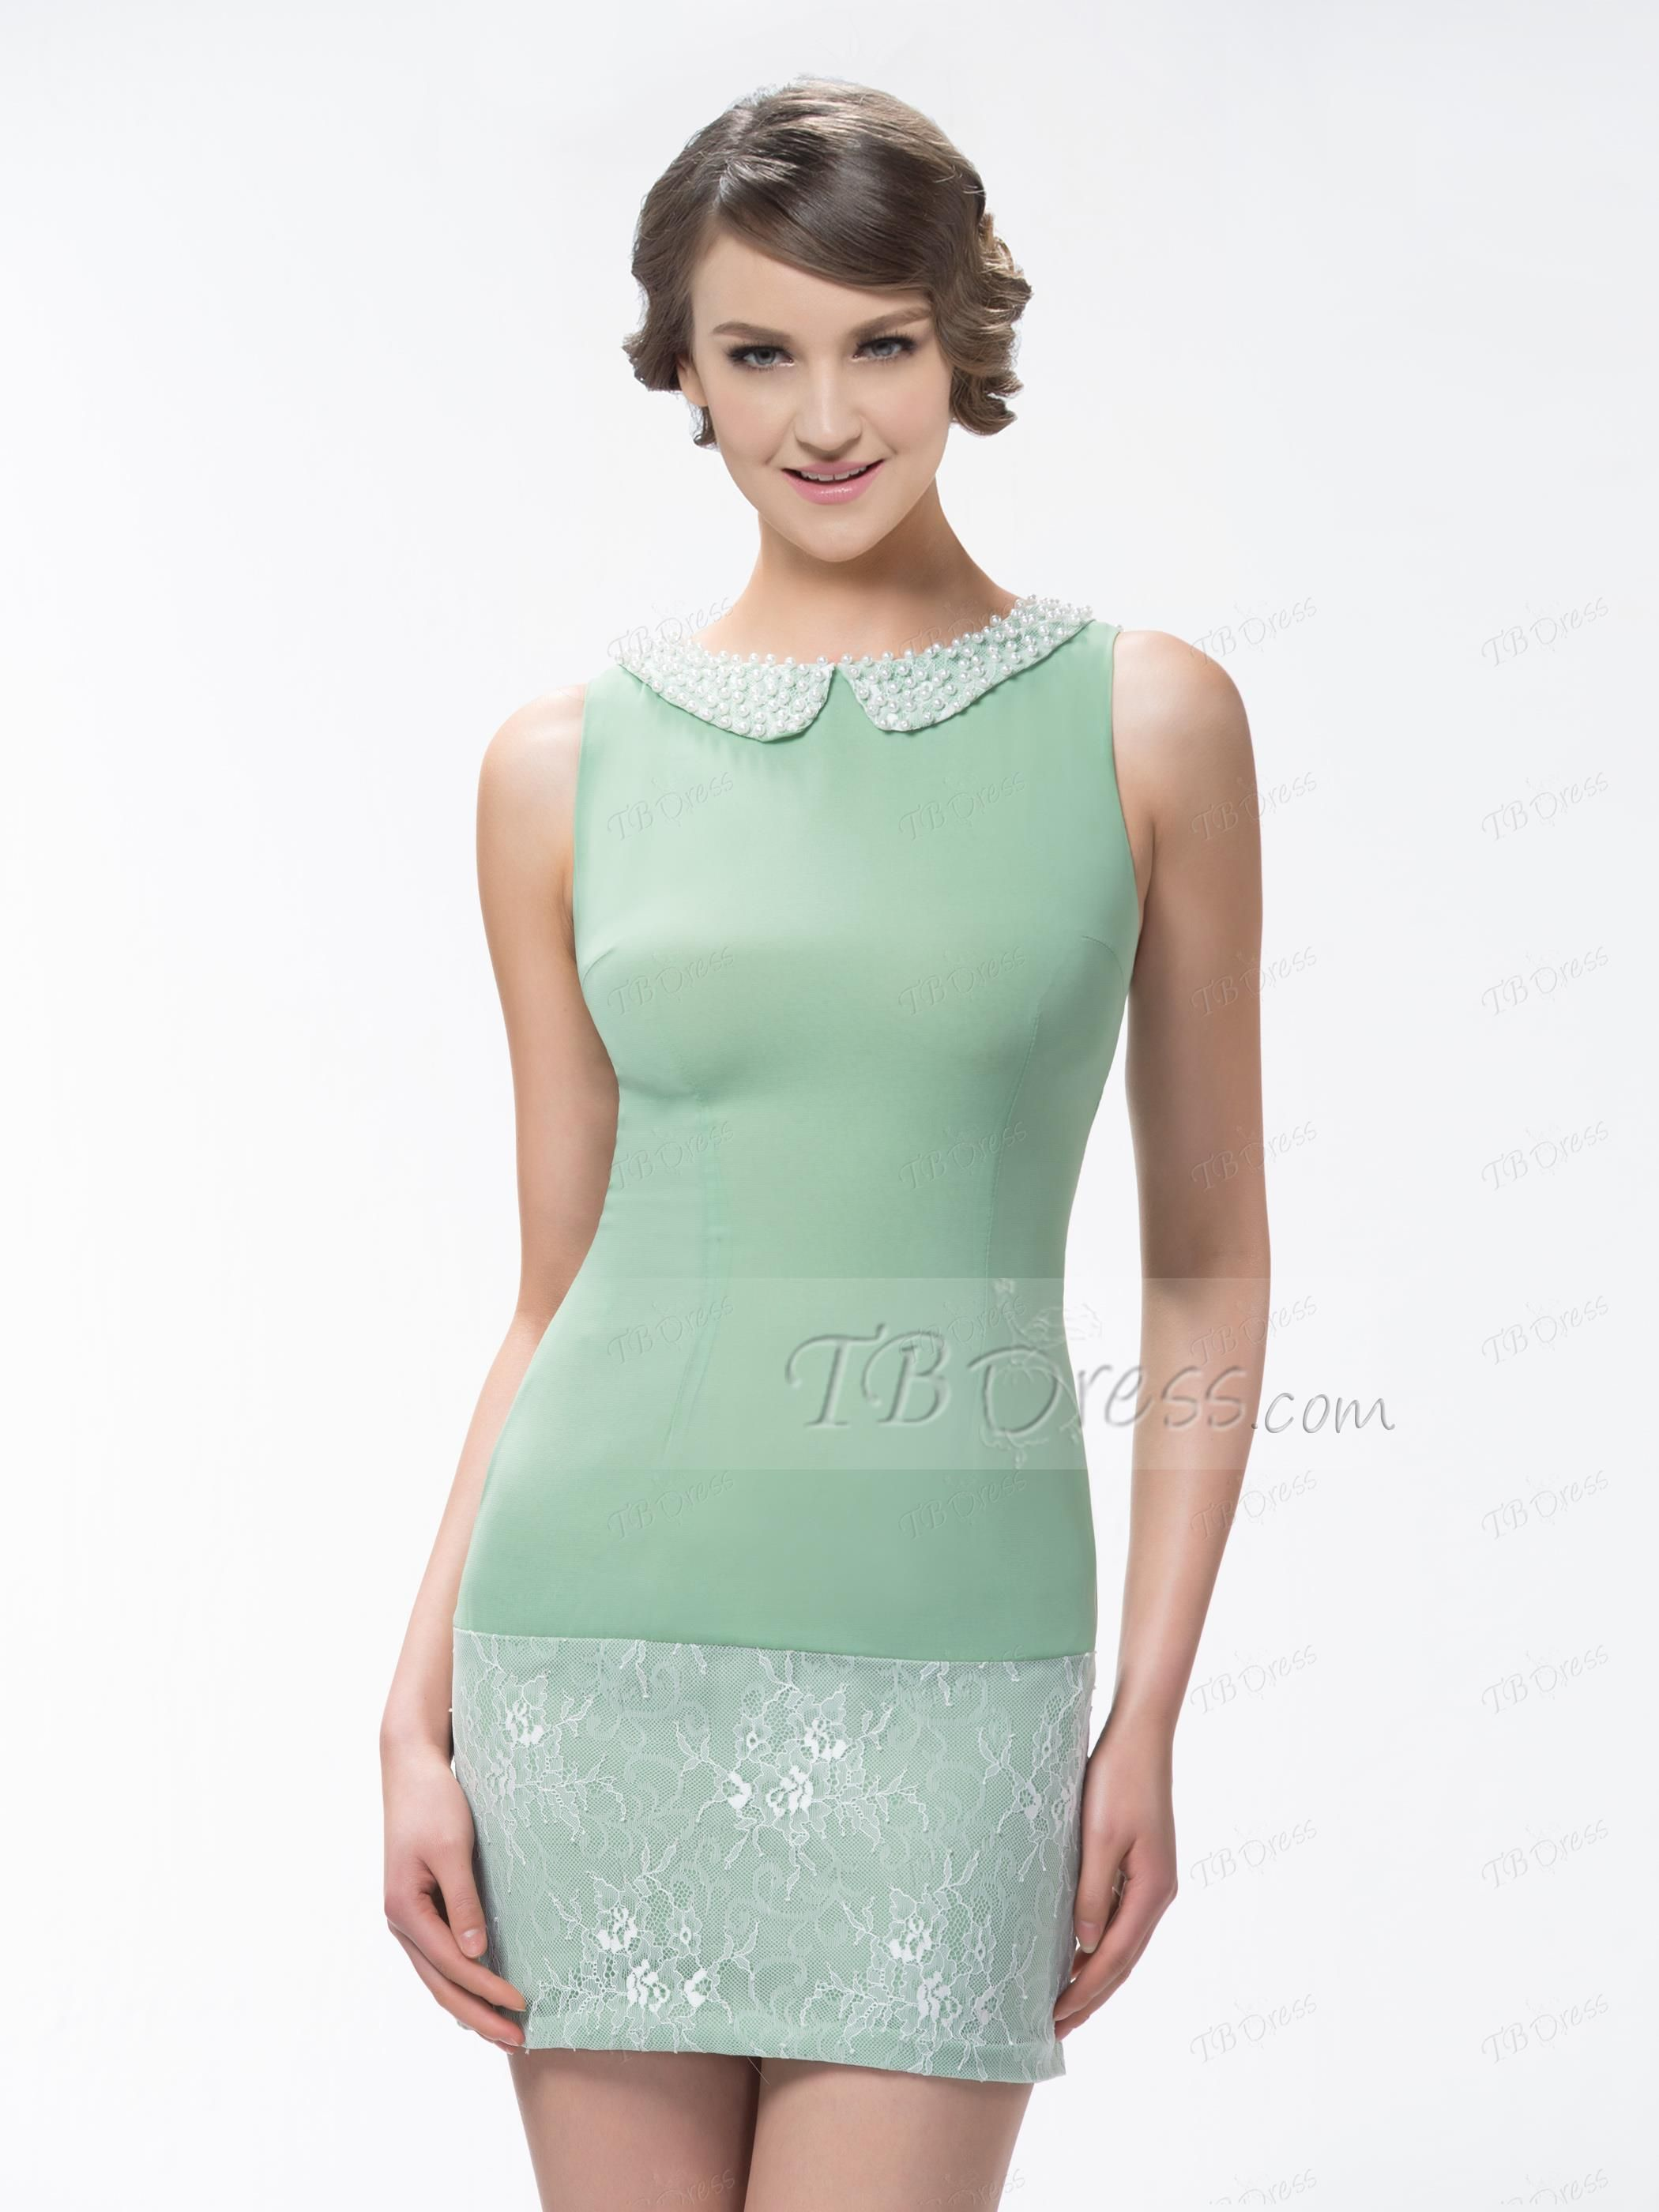 007a4298 TBDress.com Cute Scoop Sheath Short/Mini Pearl Lace Bridesmaid DressItem  Code: 10891327 4+ shades of purple